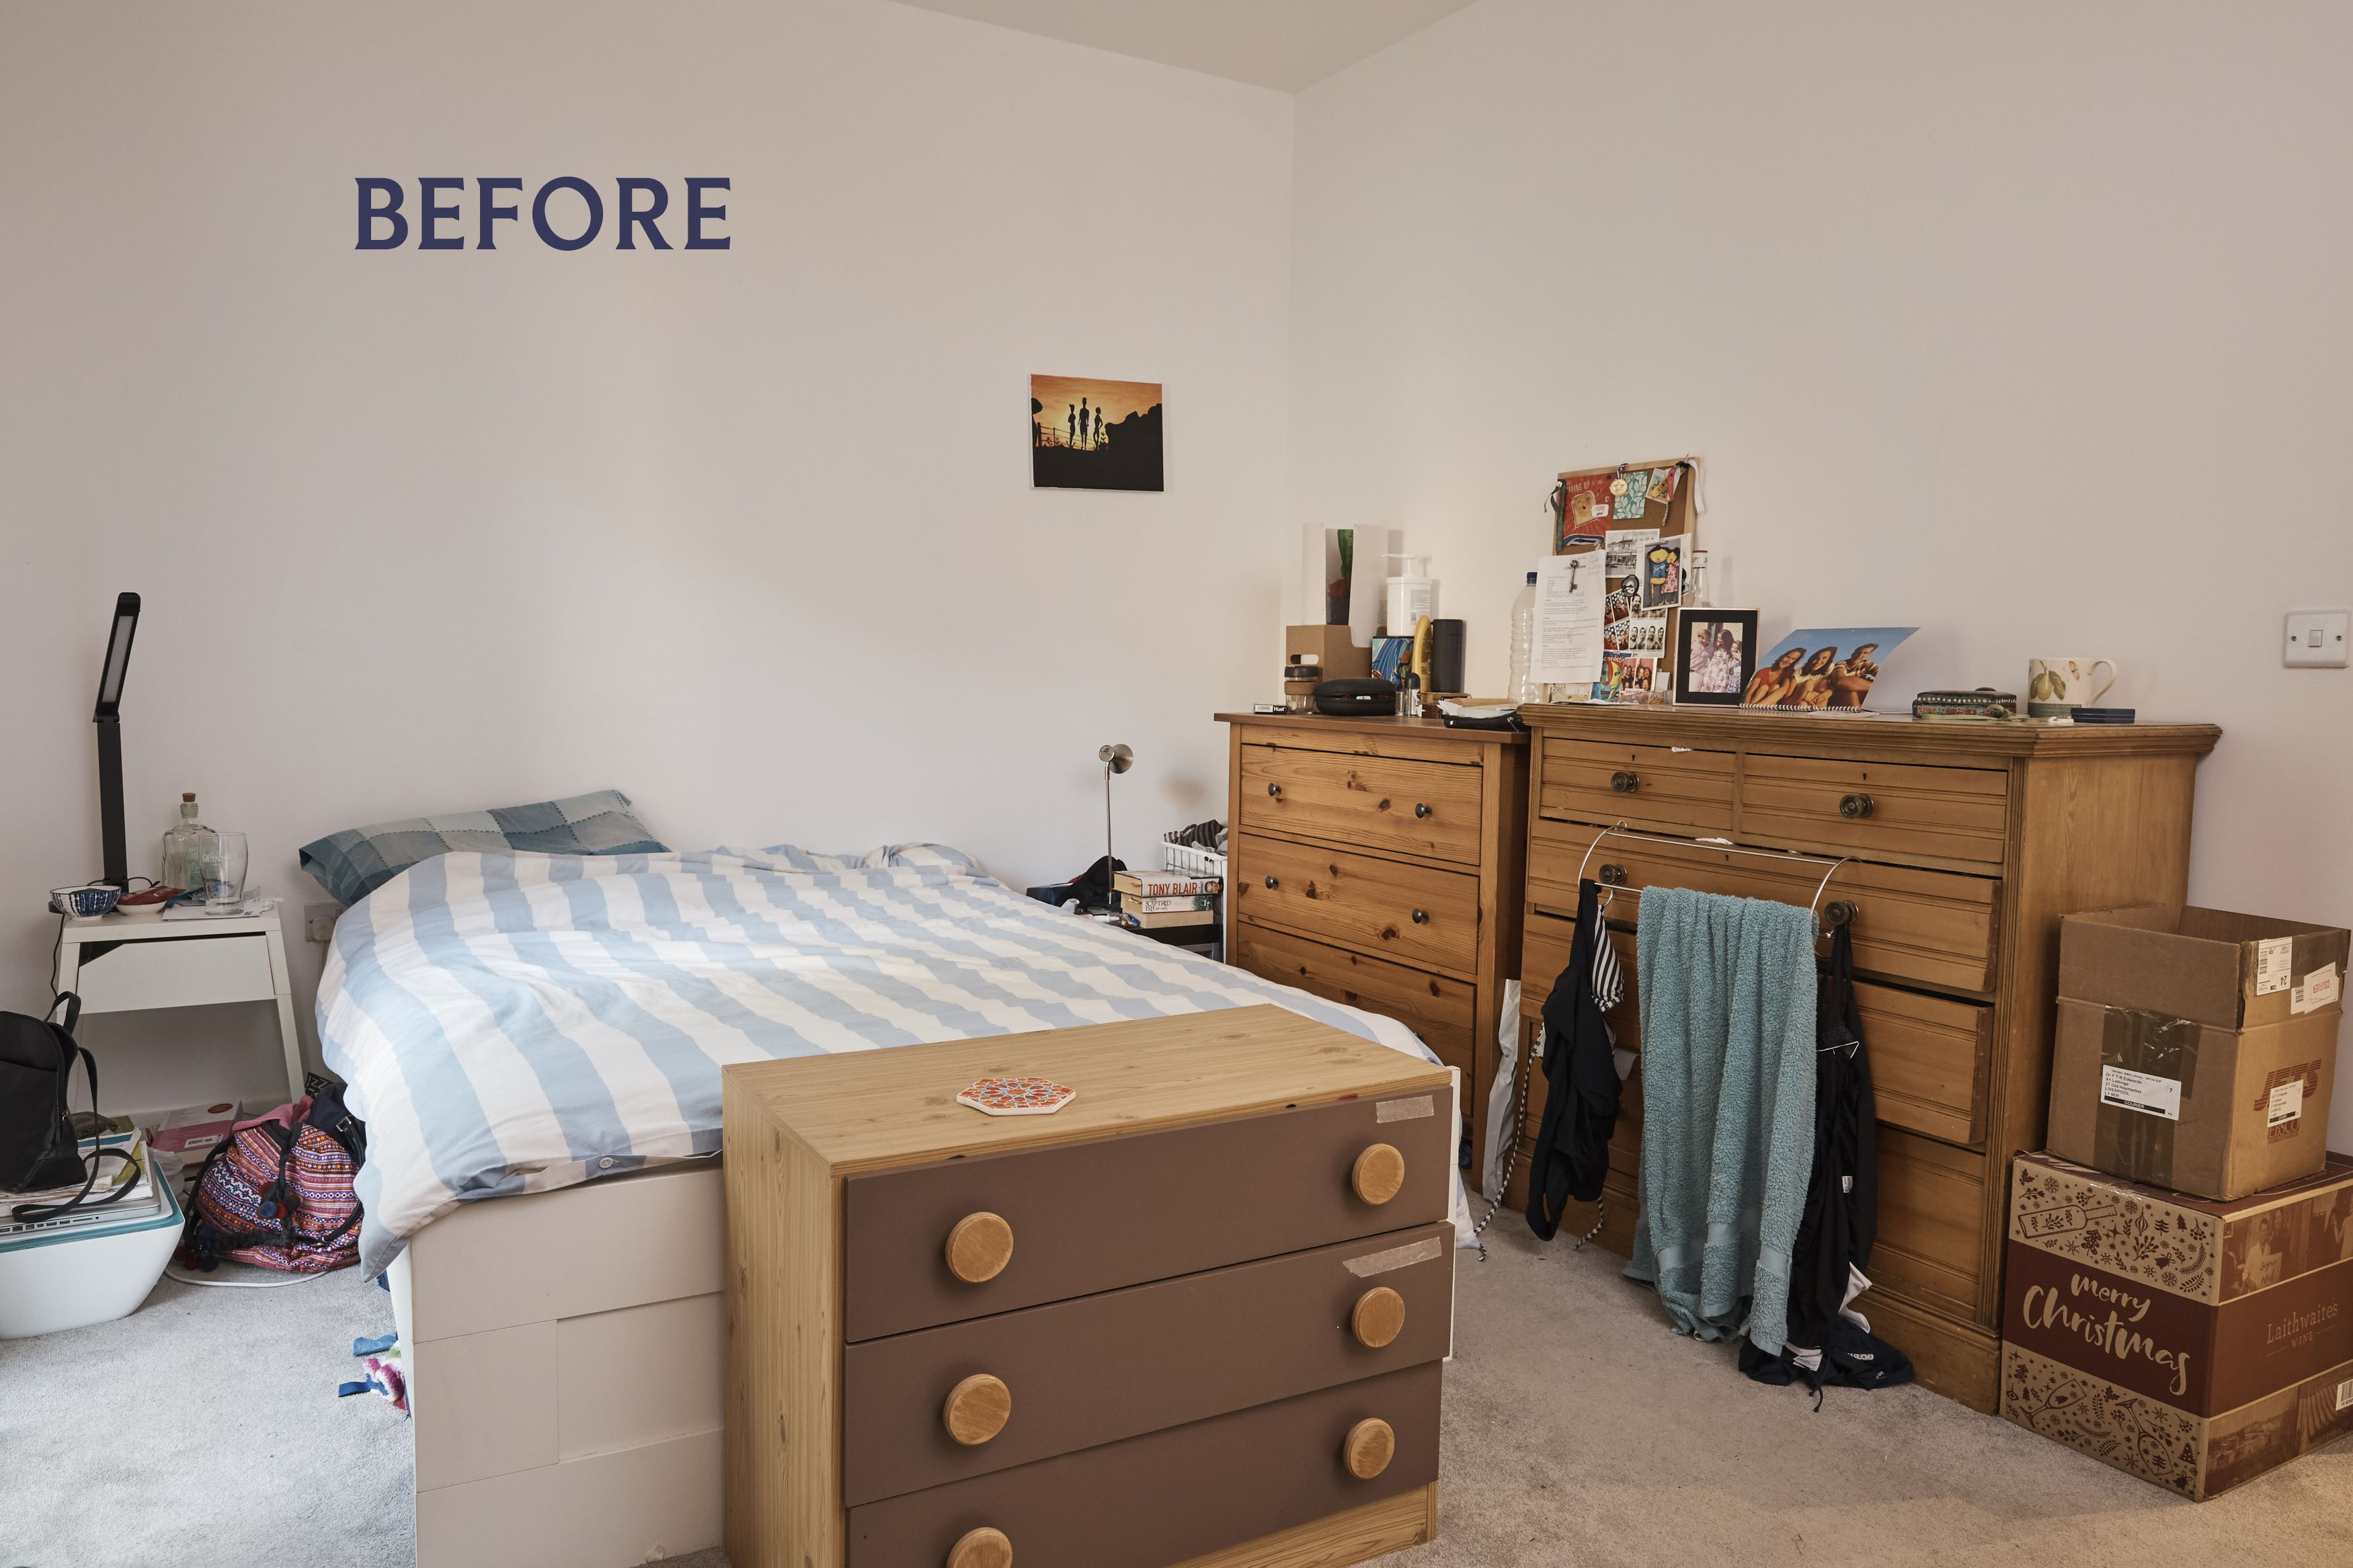 Friends redecorate London home for less than £2,000 using second hand items